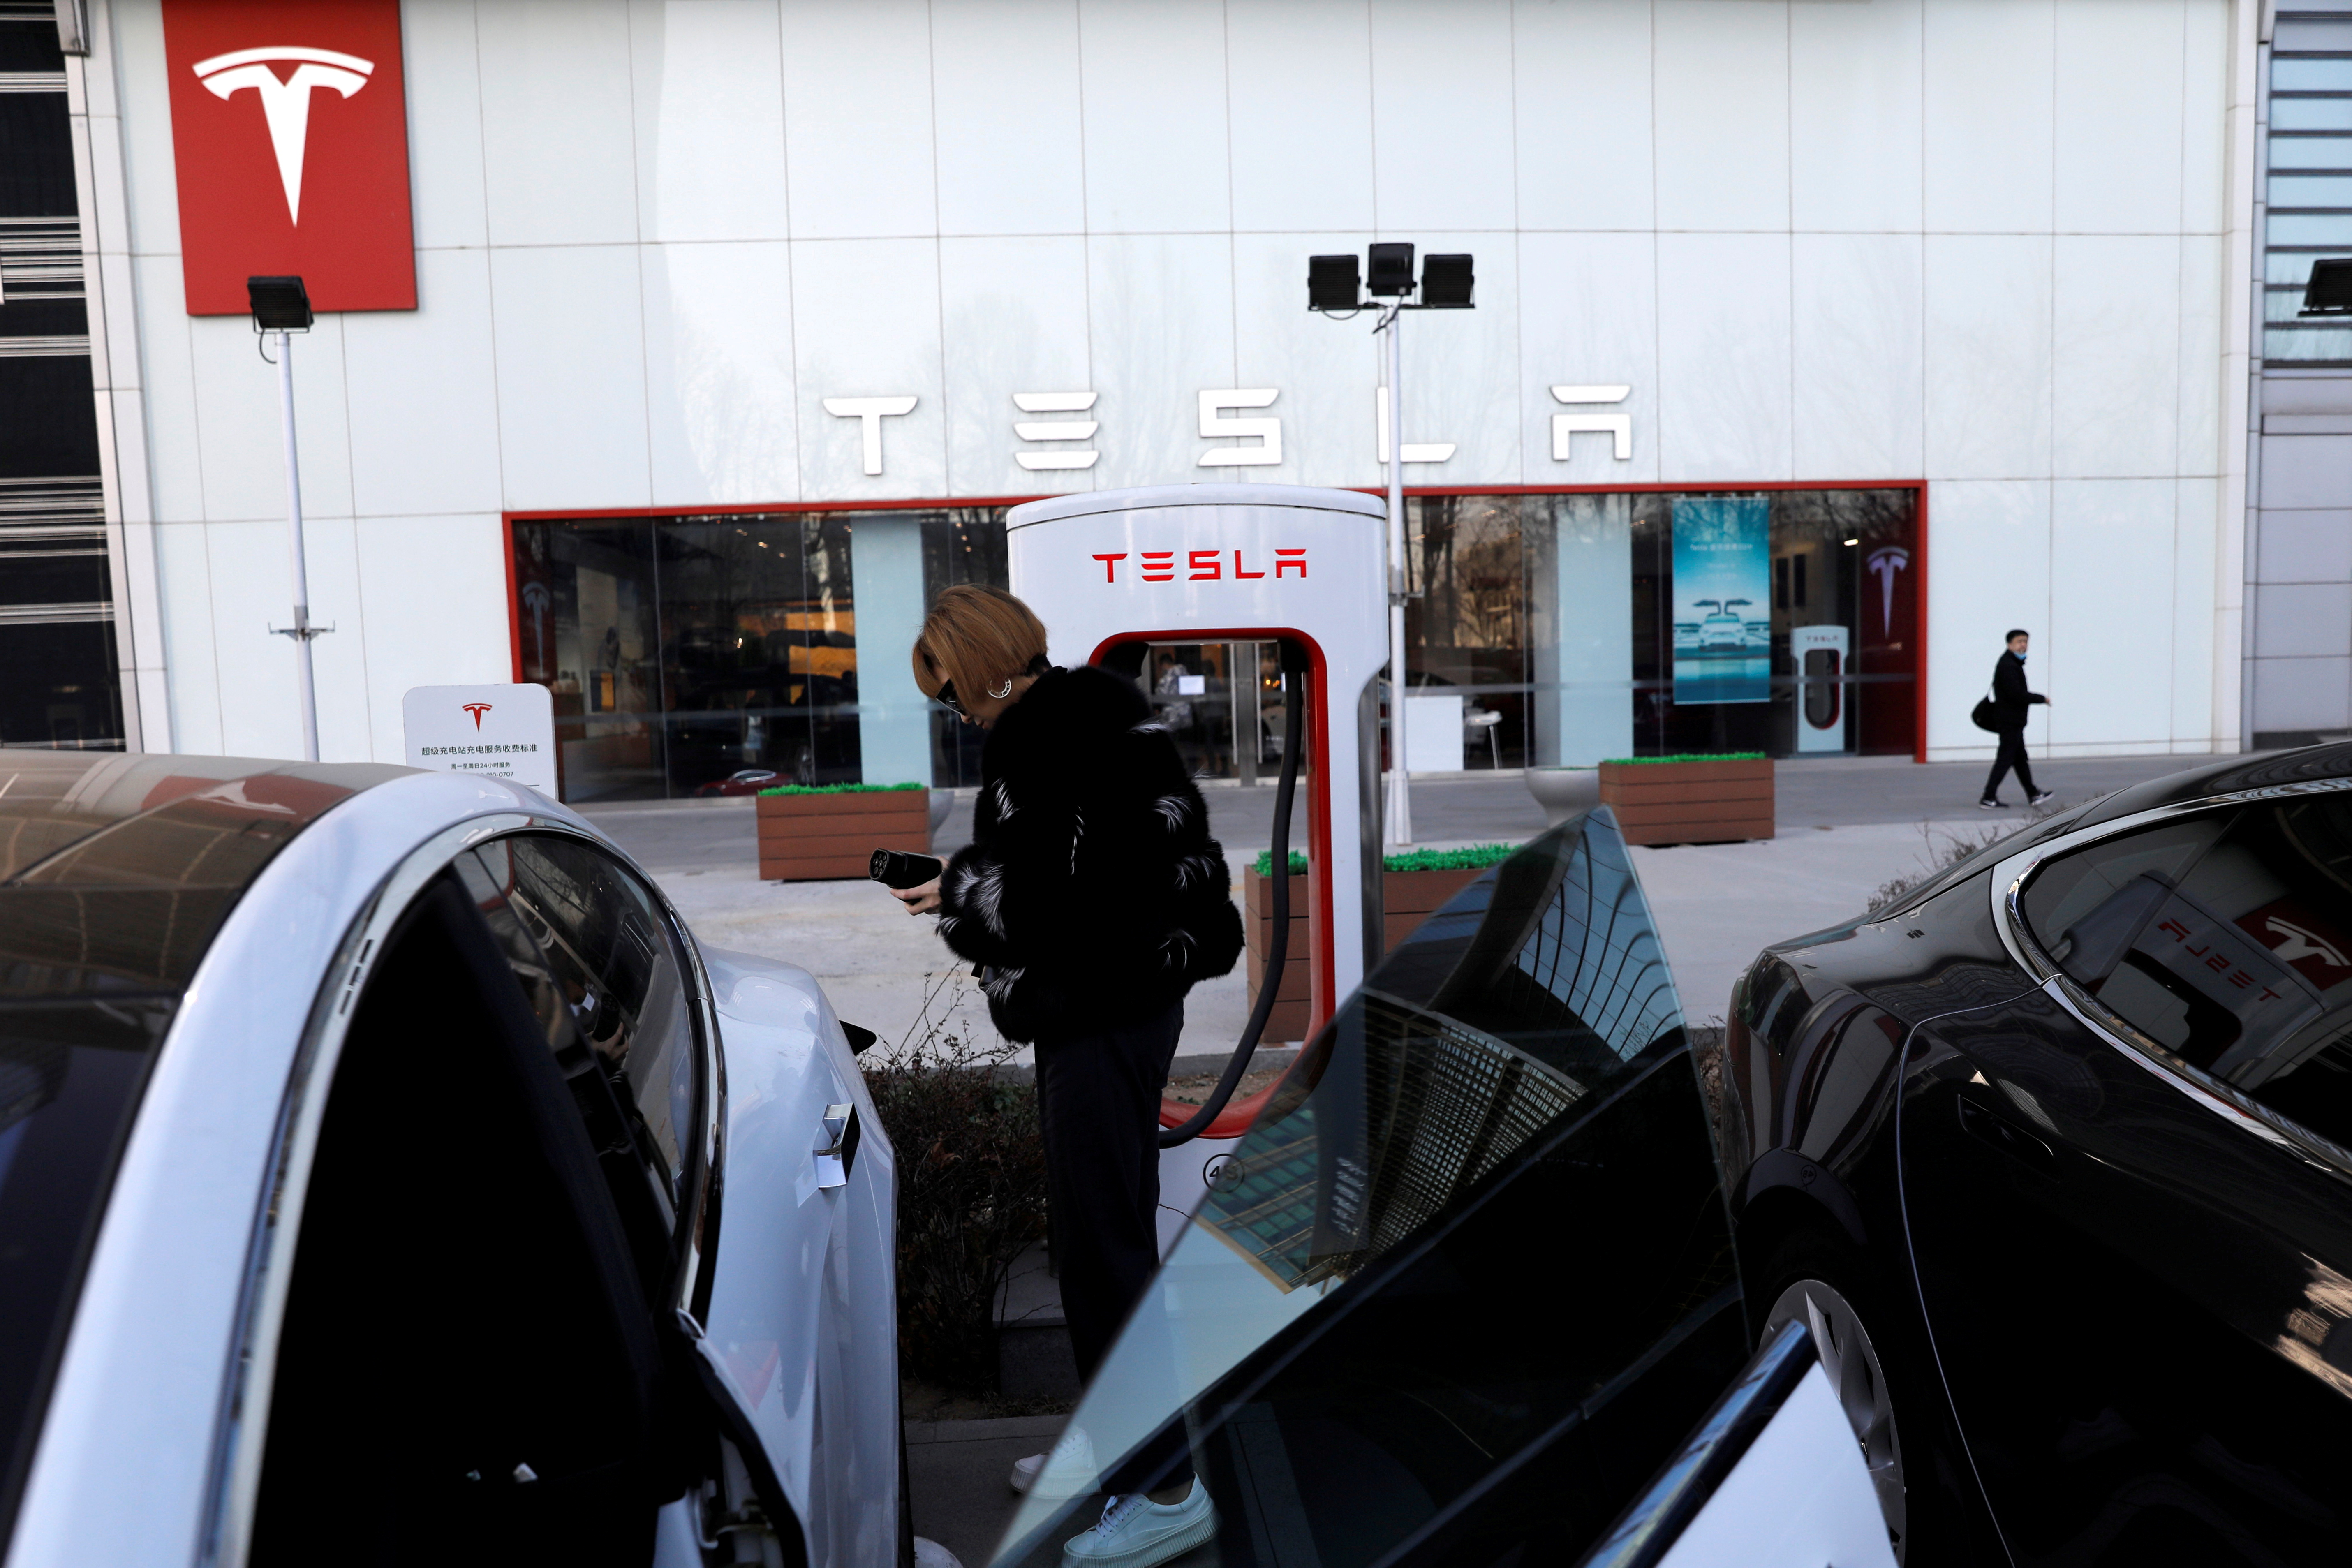 A woman charges a Tesla car in front of the electric vehicle maker's showroom in Beijing, China January 5, 2021. REUTERS/Tingshu Wang/File Photo  GLOBAL BUSINESS WEEK AHEAD